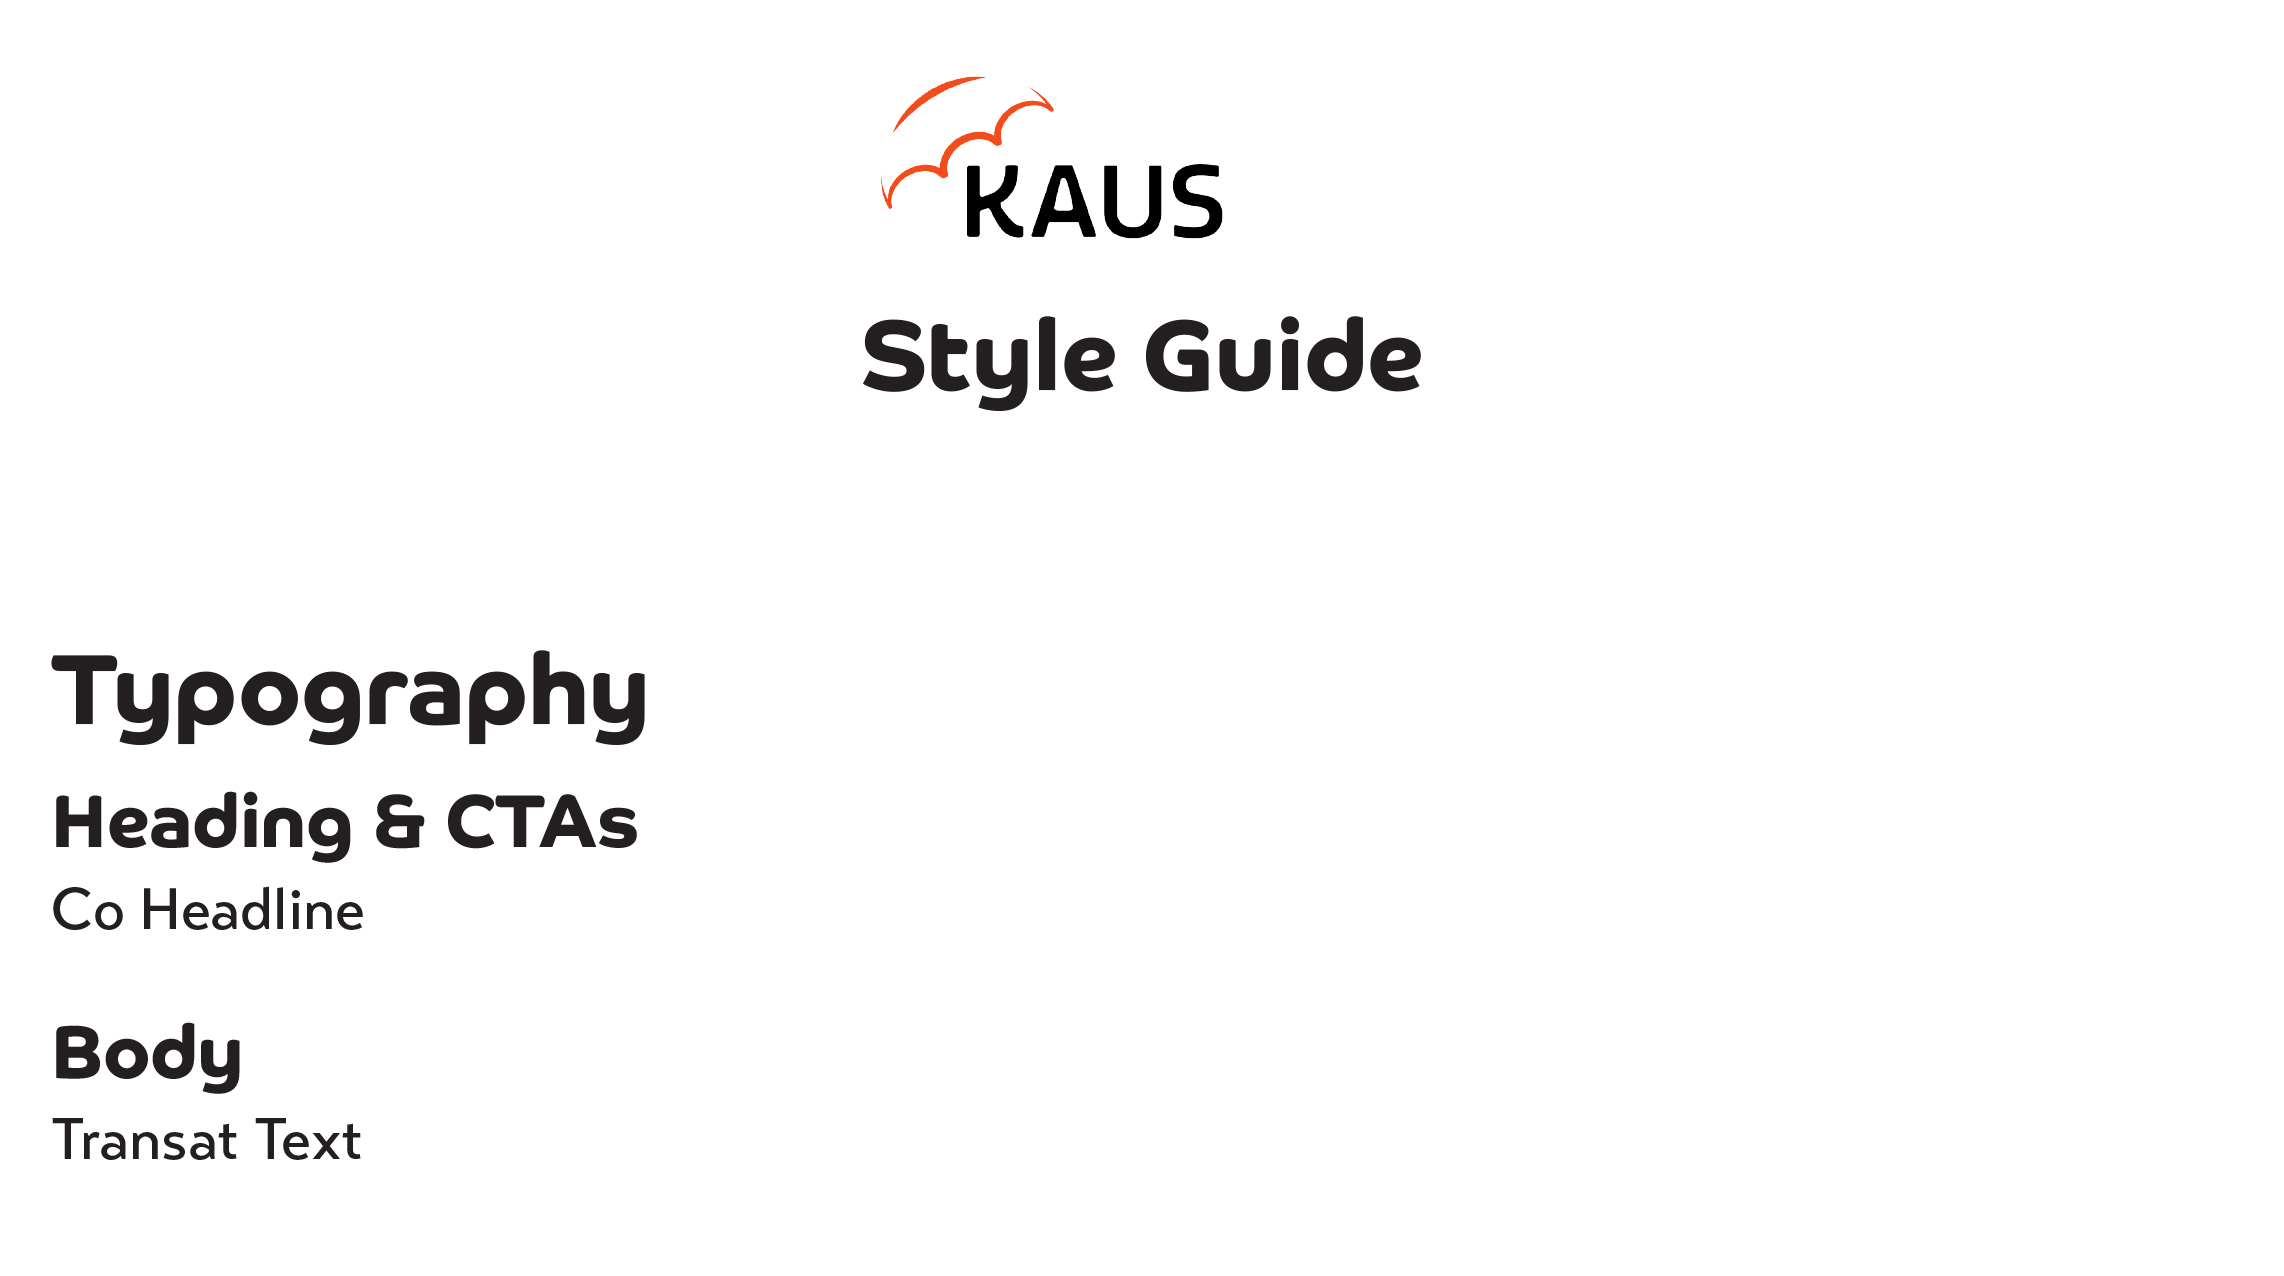 kaus_brand_style_tile_excerpt